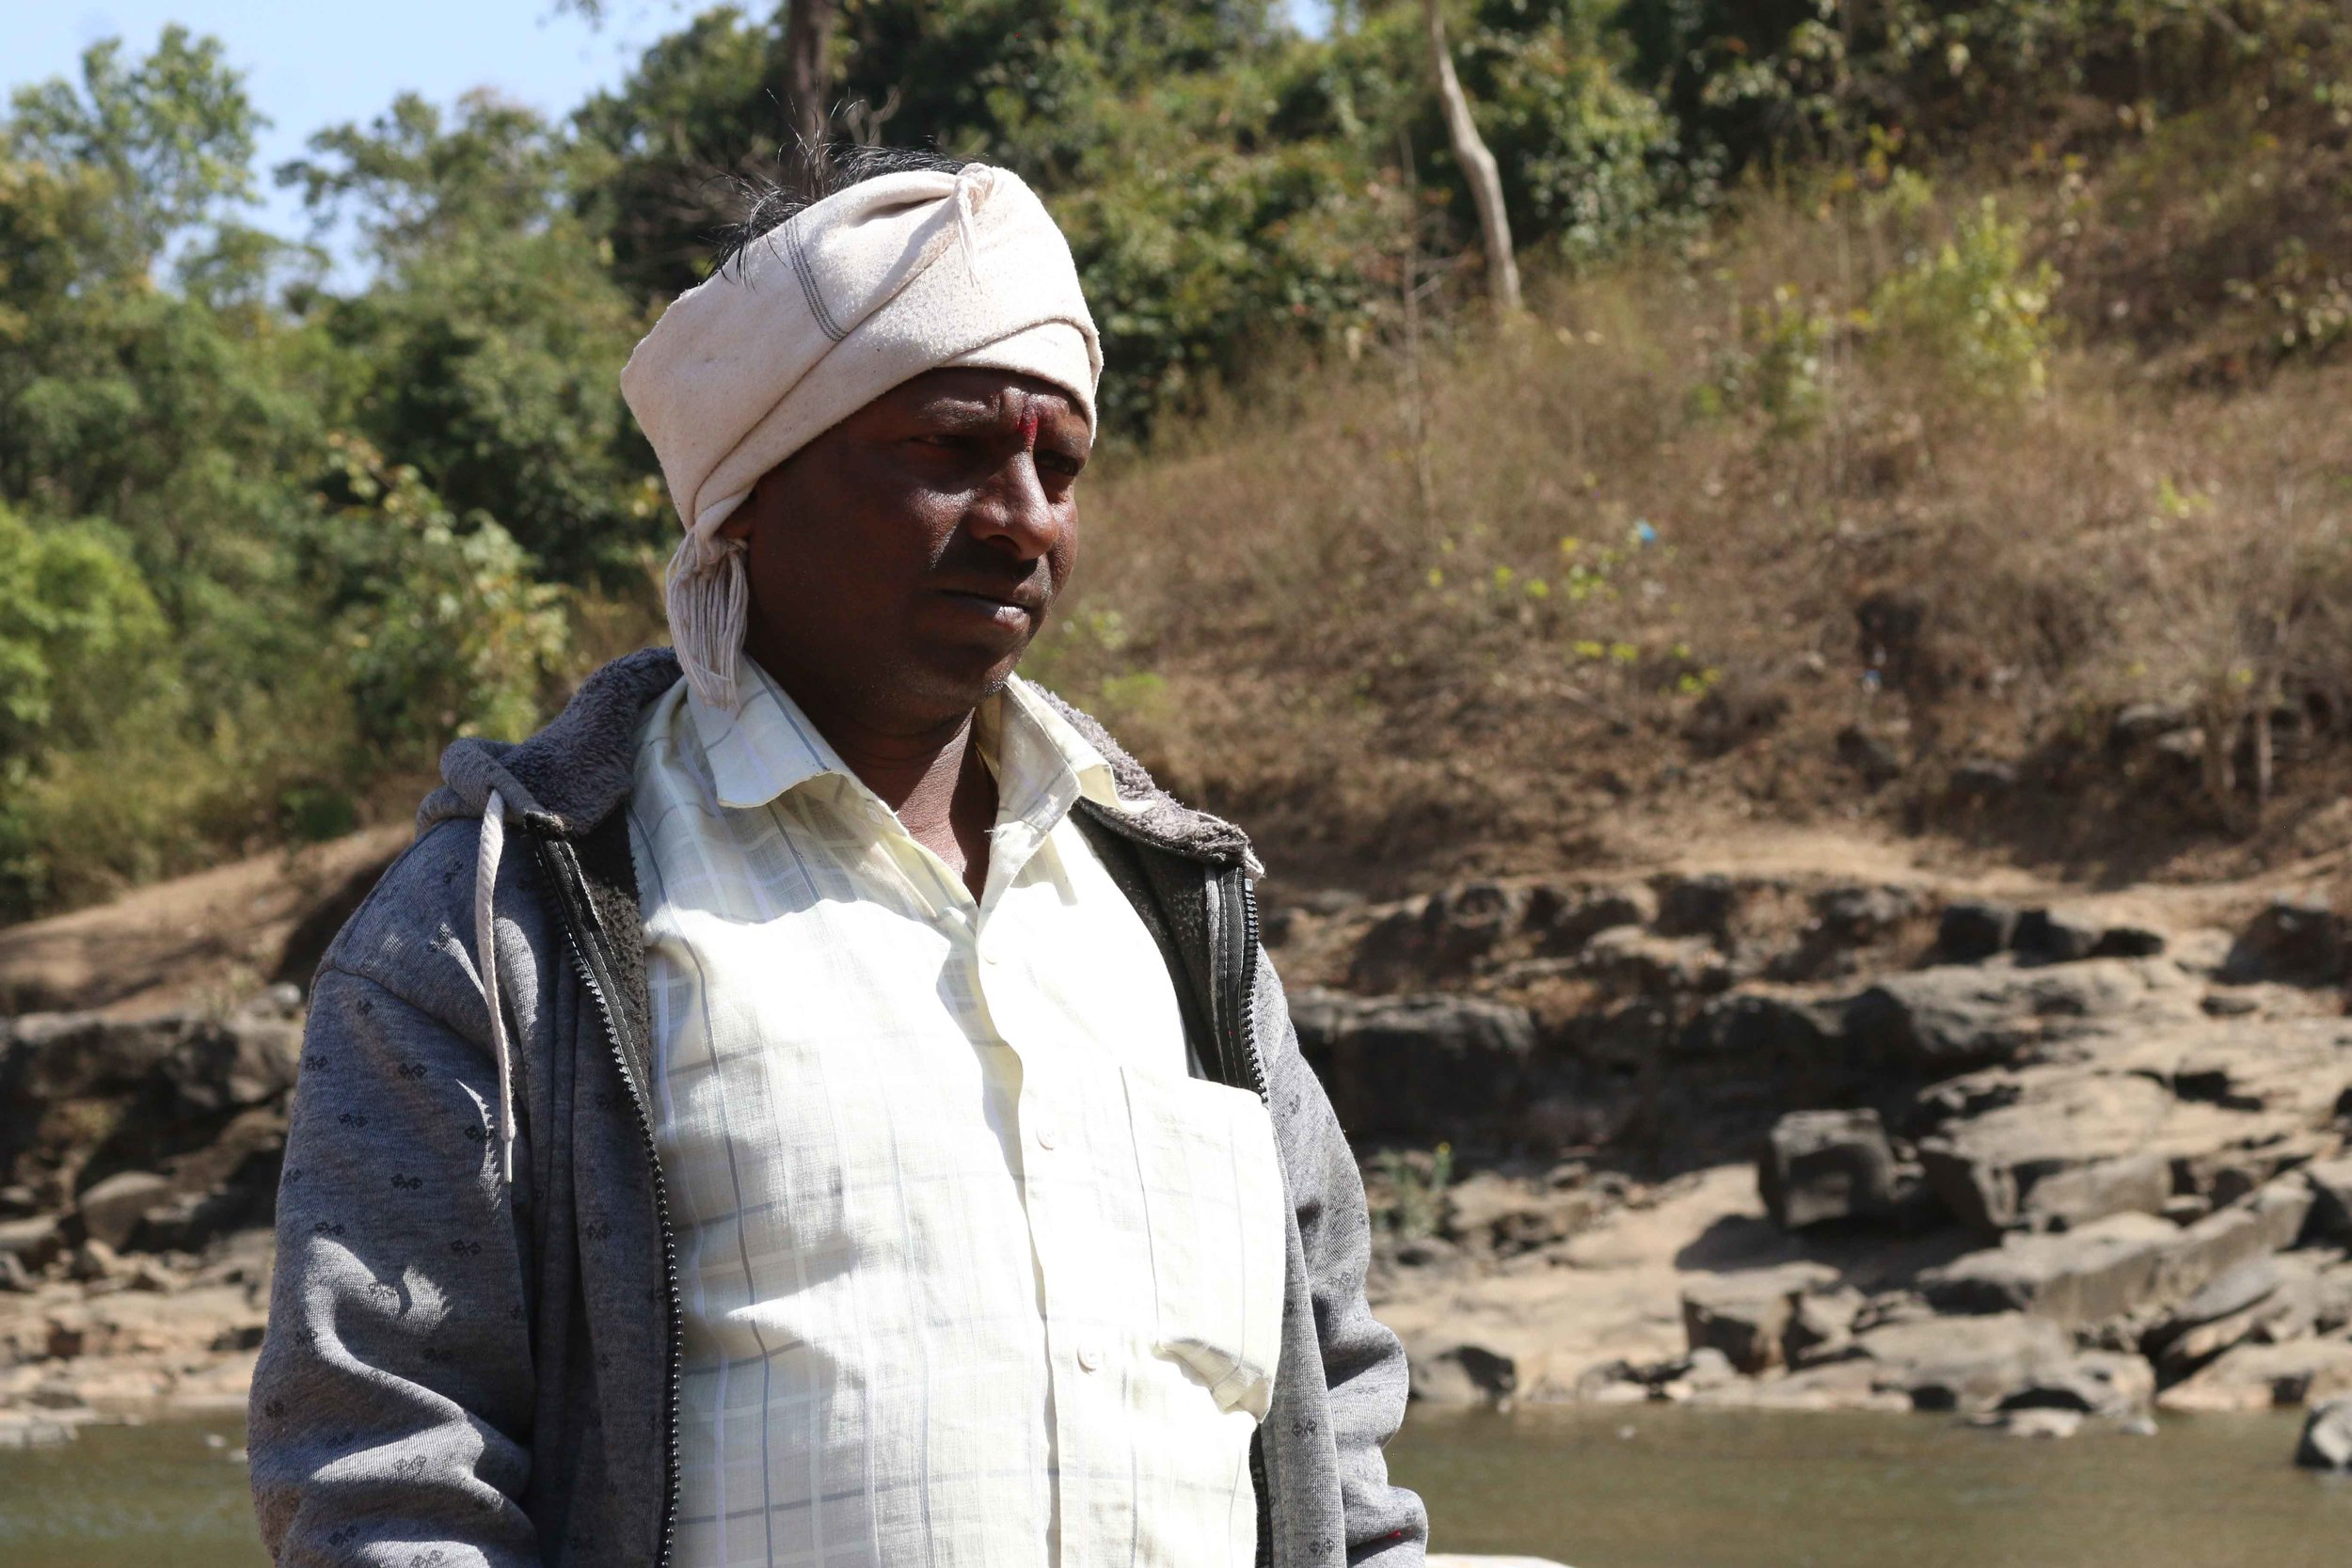 Patil Ramdas is concerned for his community.